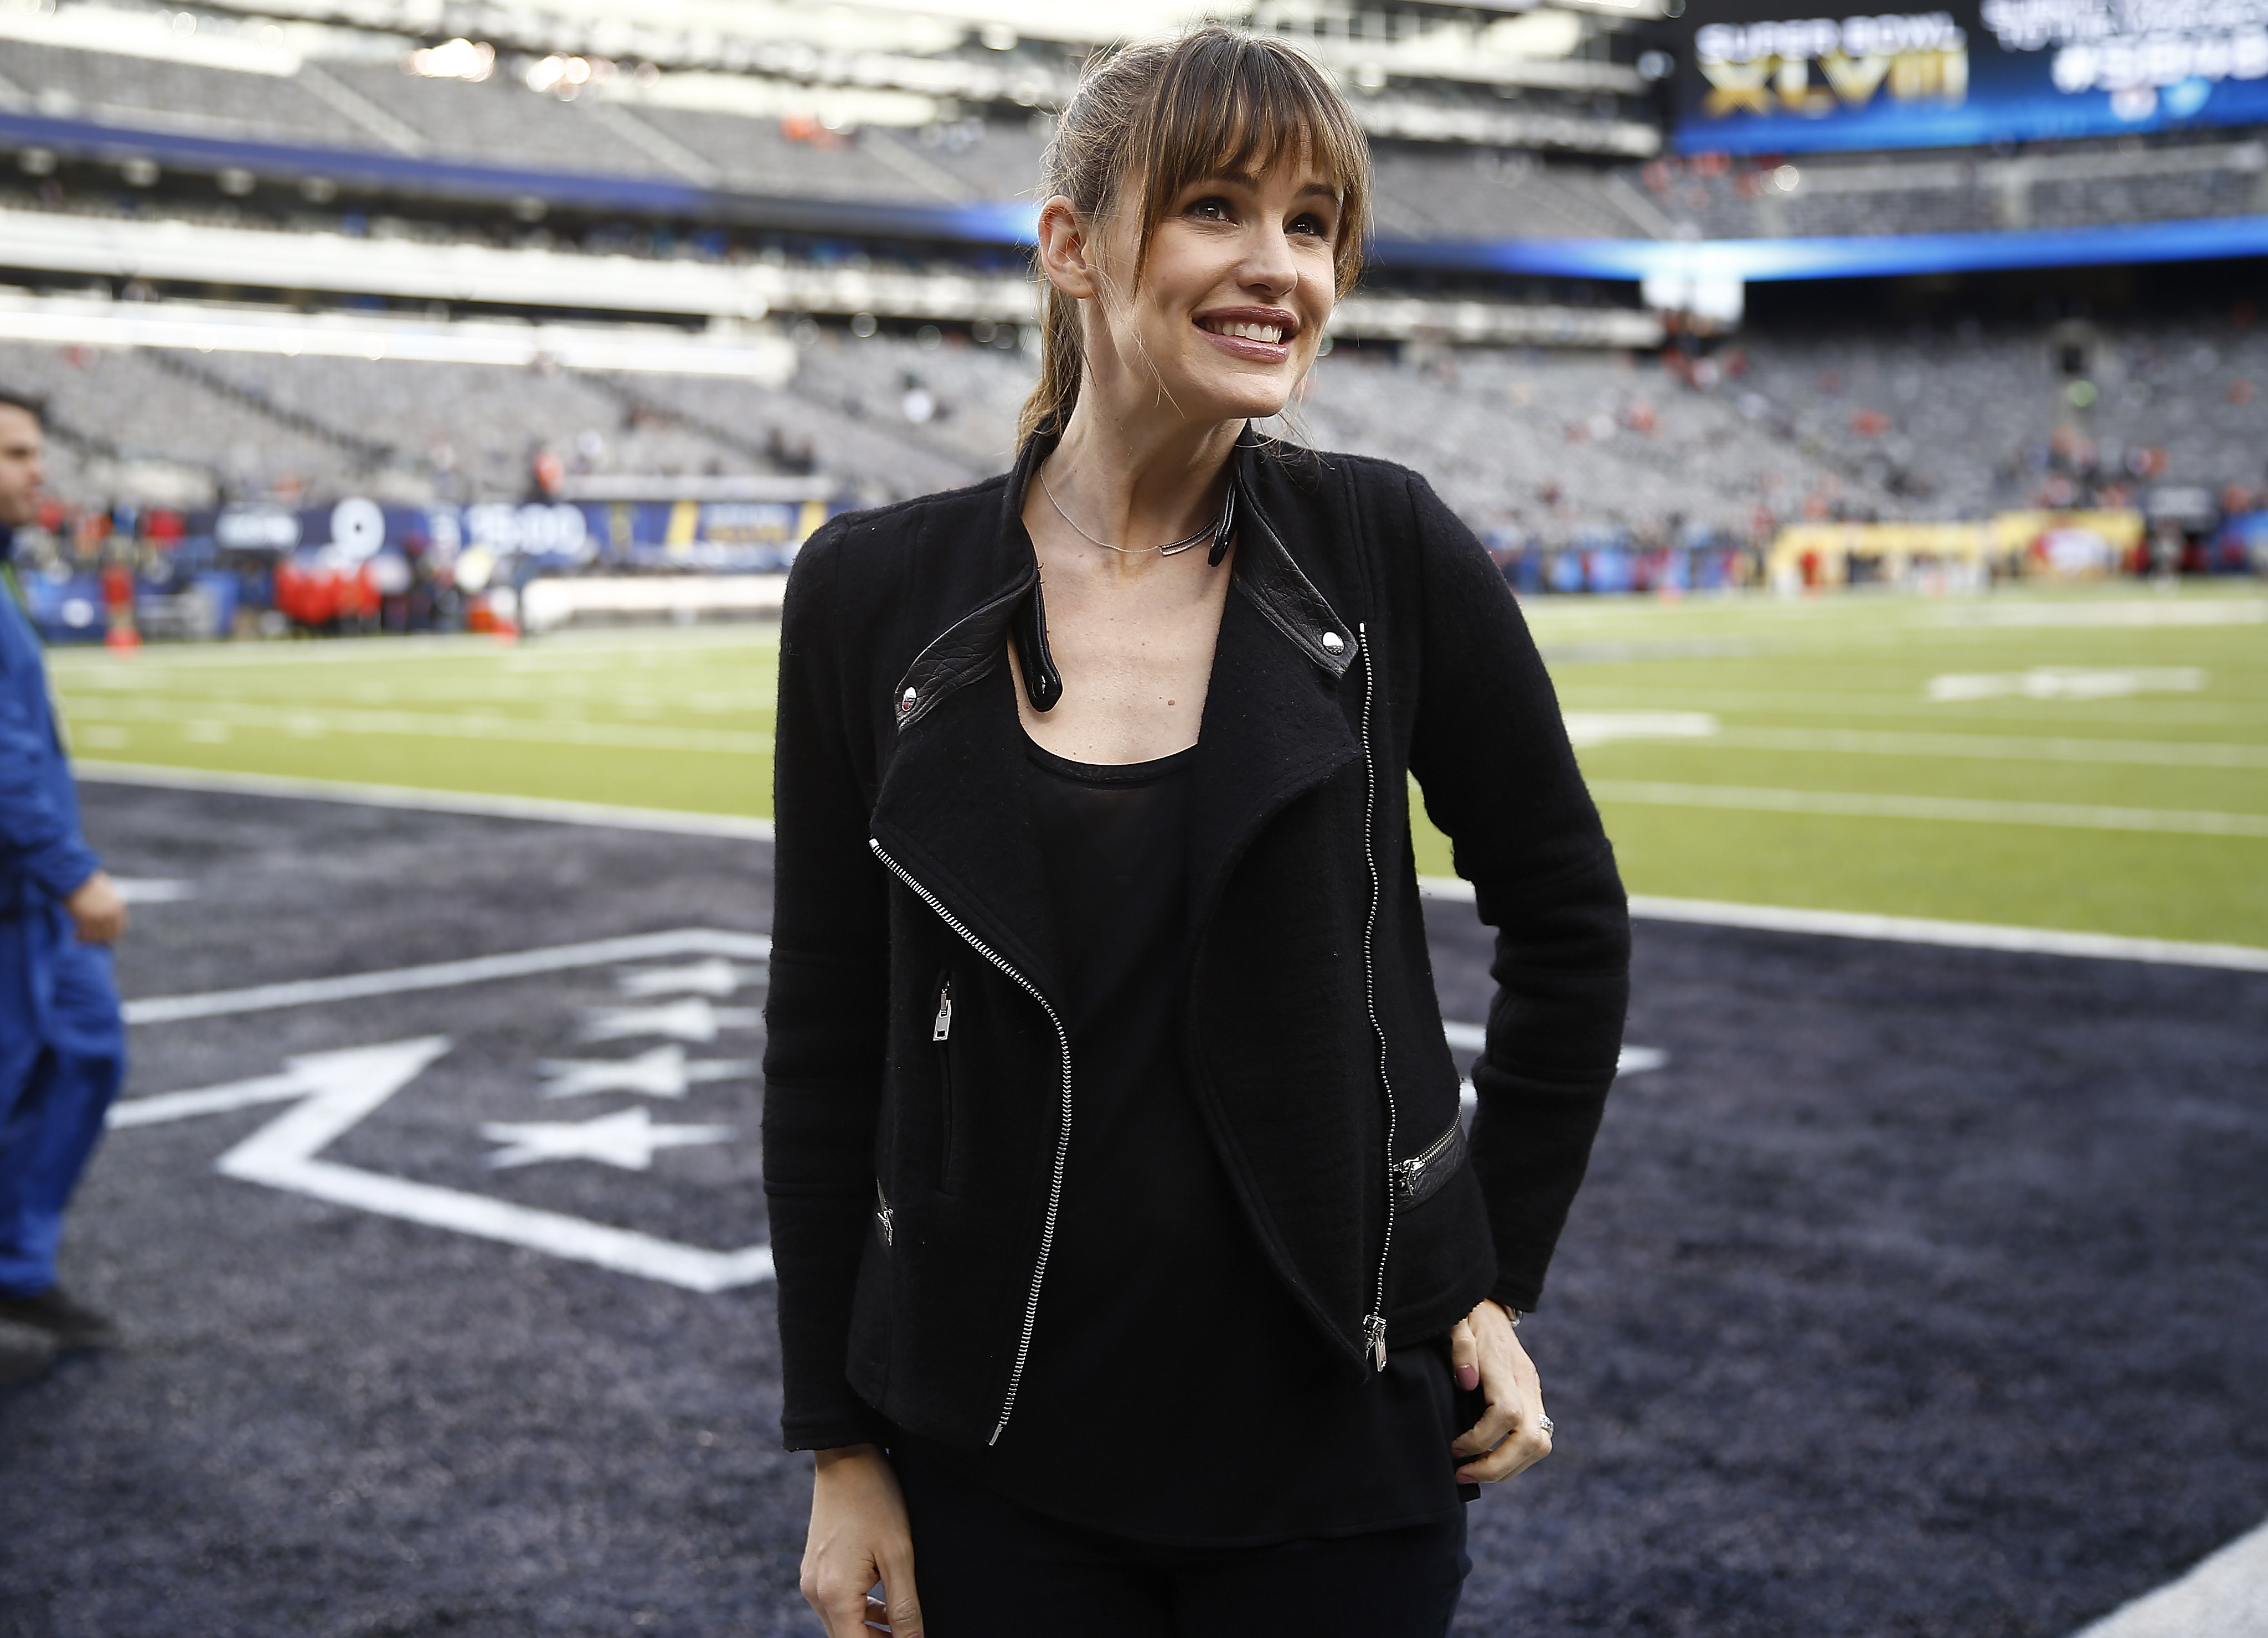 Us Actress Jennifer Garner Poses on the Field Before the Start of Super Bowl Xlviii at the Metlife Stadium in East Rutherford New Jersey Usa 02 February 2014 United States East RutherfordUsa American Football Super Bowl - Feb 2014